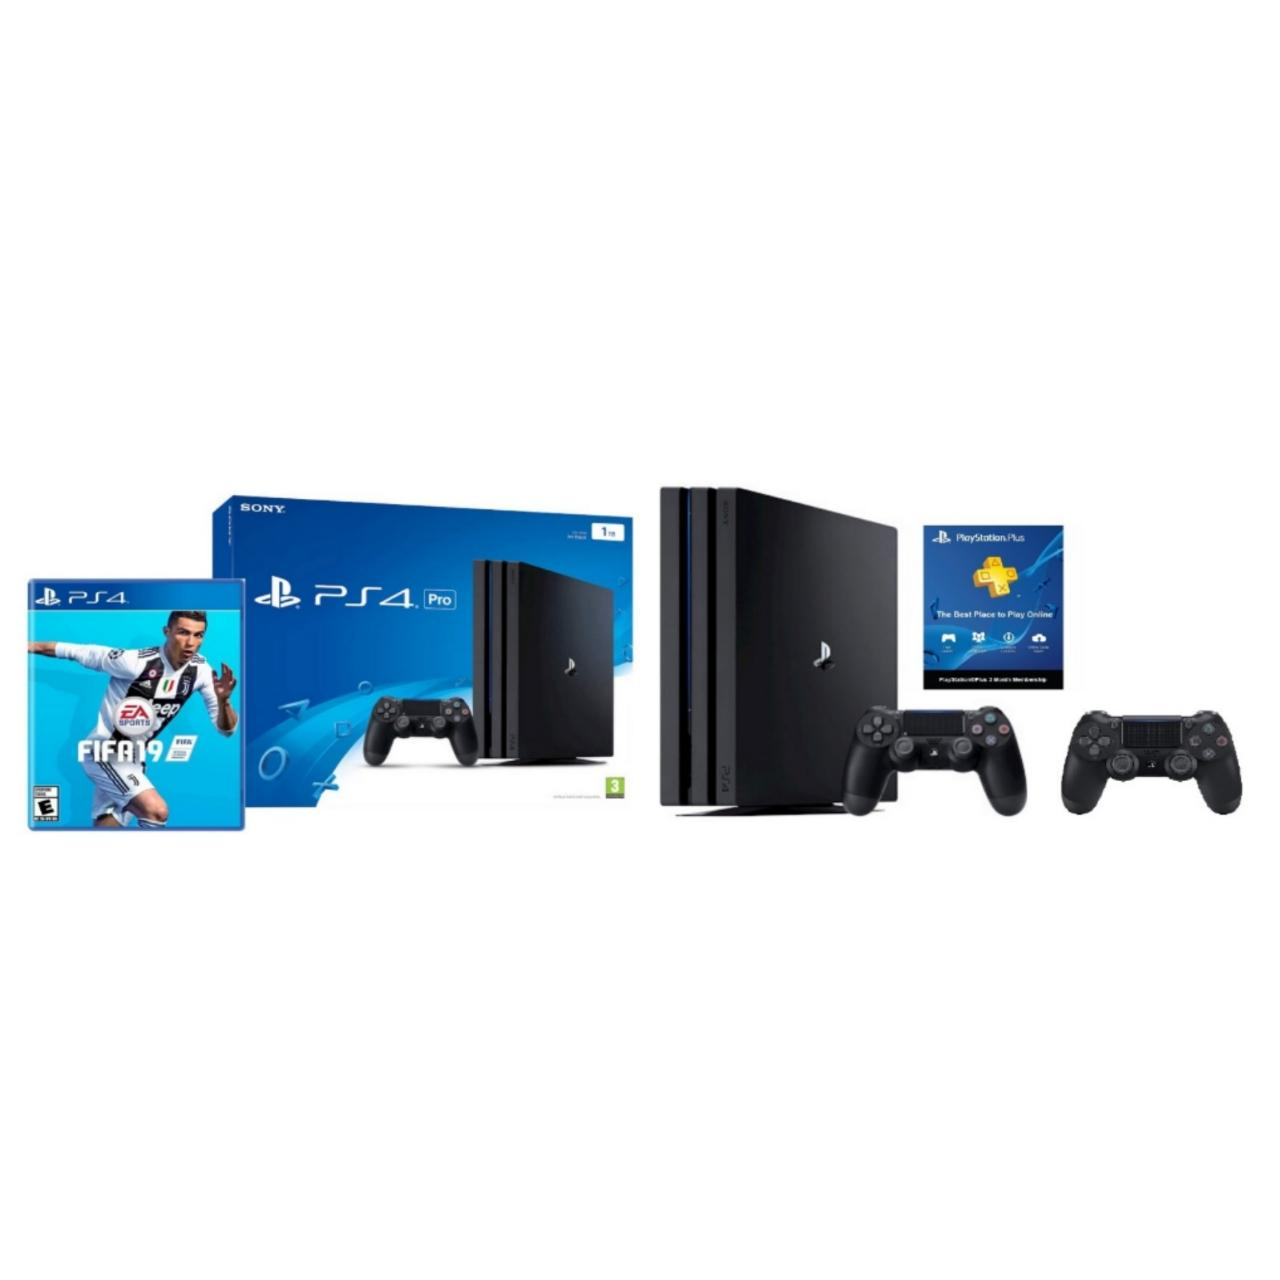 PS4 1TB Pro Console with 2 Controllers (Black) + FIFA 19